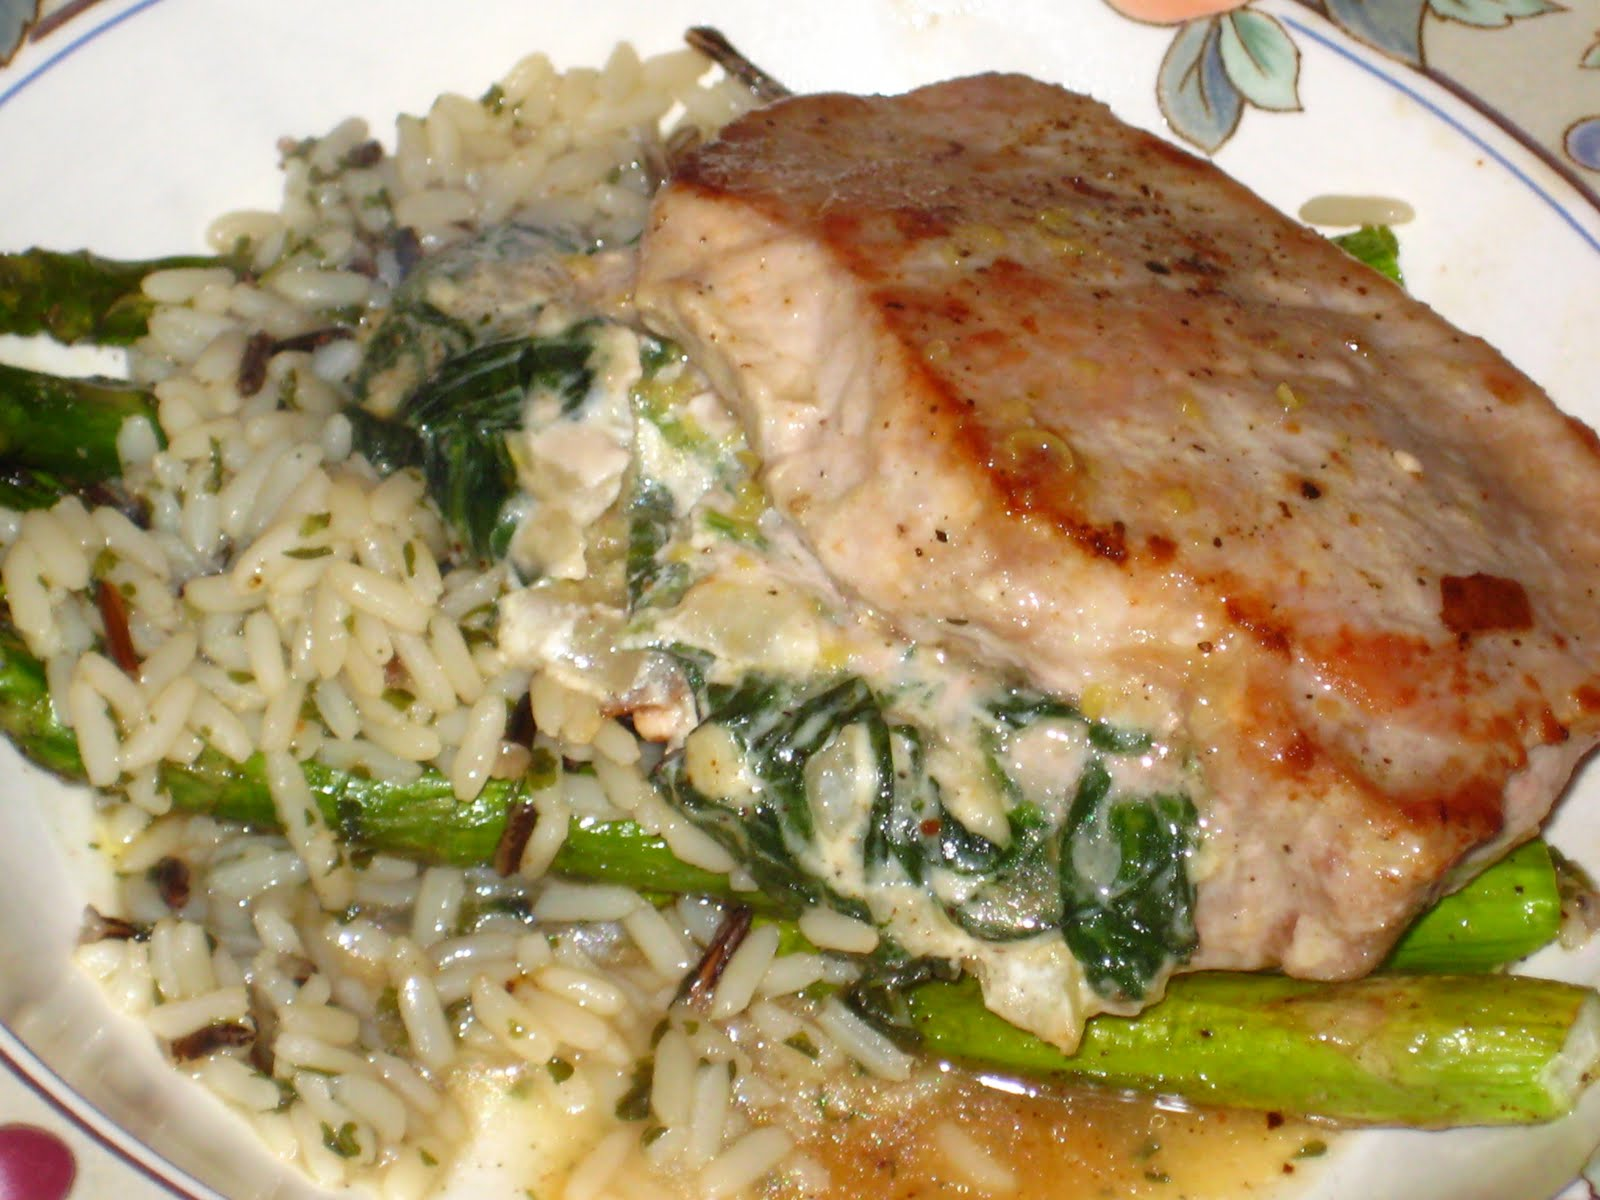 Spinach and Goat Cheese Stuffed Pork Chops | Tara Takes the Cake